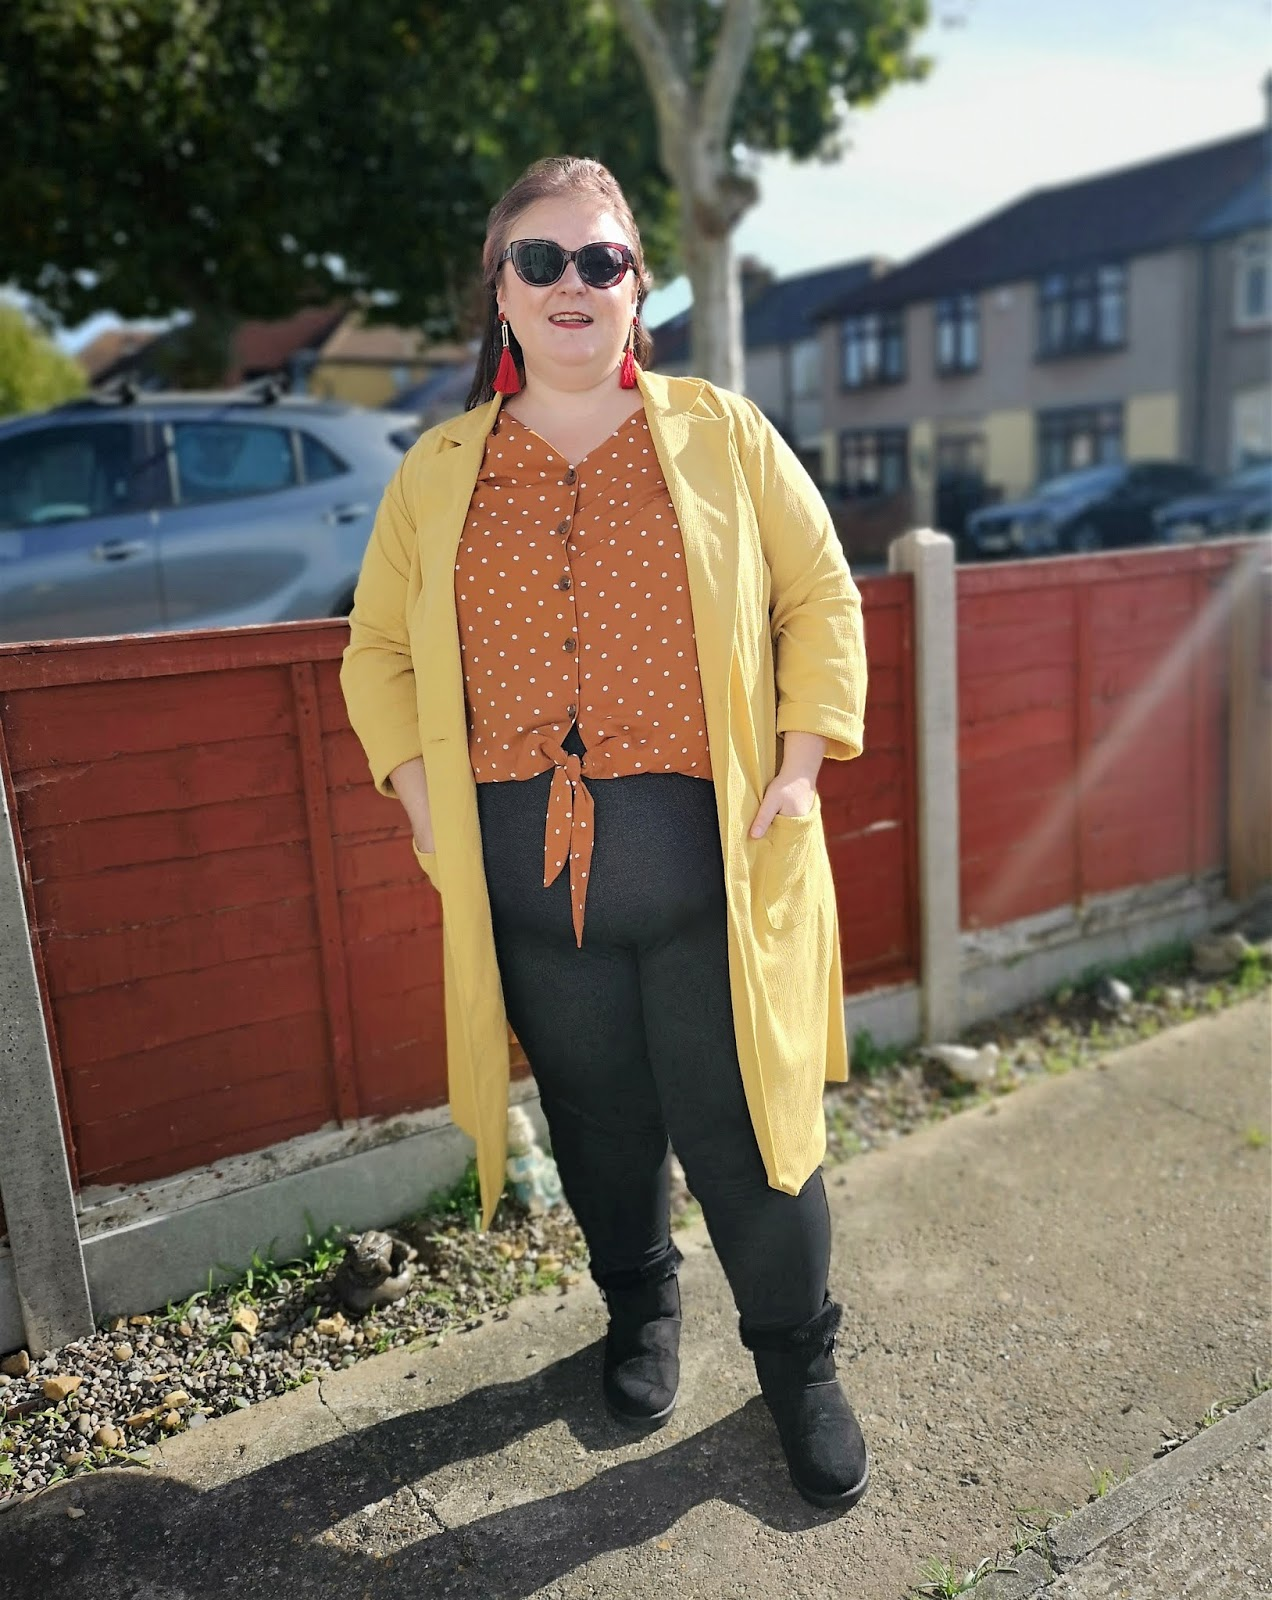 NEW LOOK CURVES MUSTARD CROSS HATCH DUSTER JACKET AUTUMN FASHION // WWW.XLOVELEAHX.CO.UK